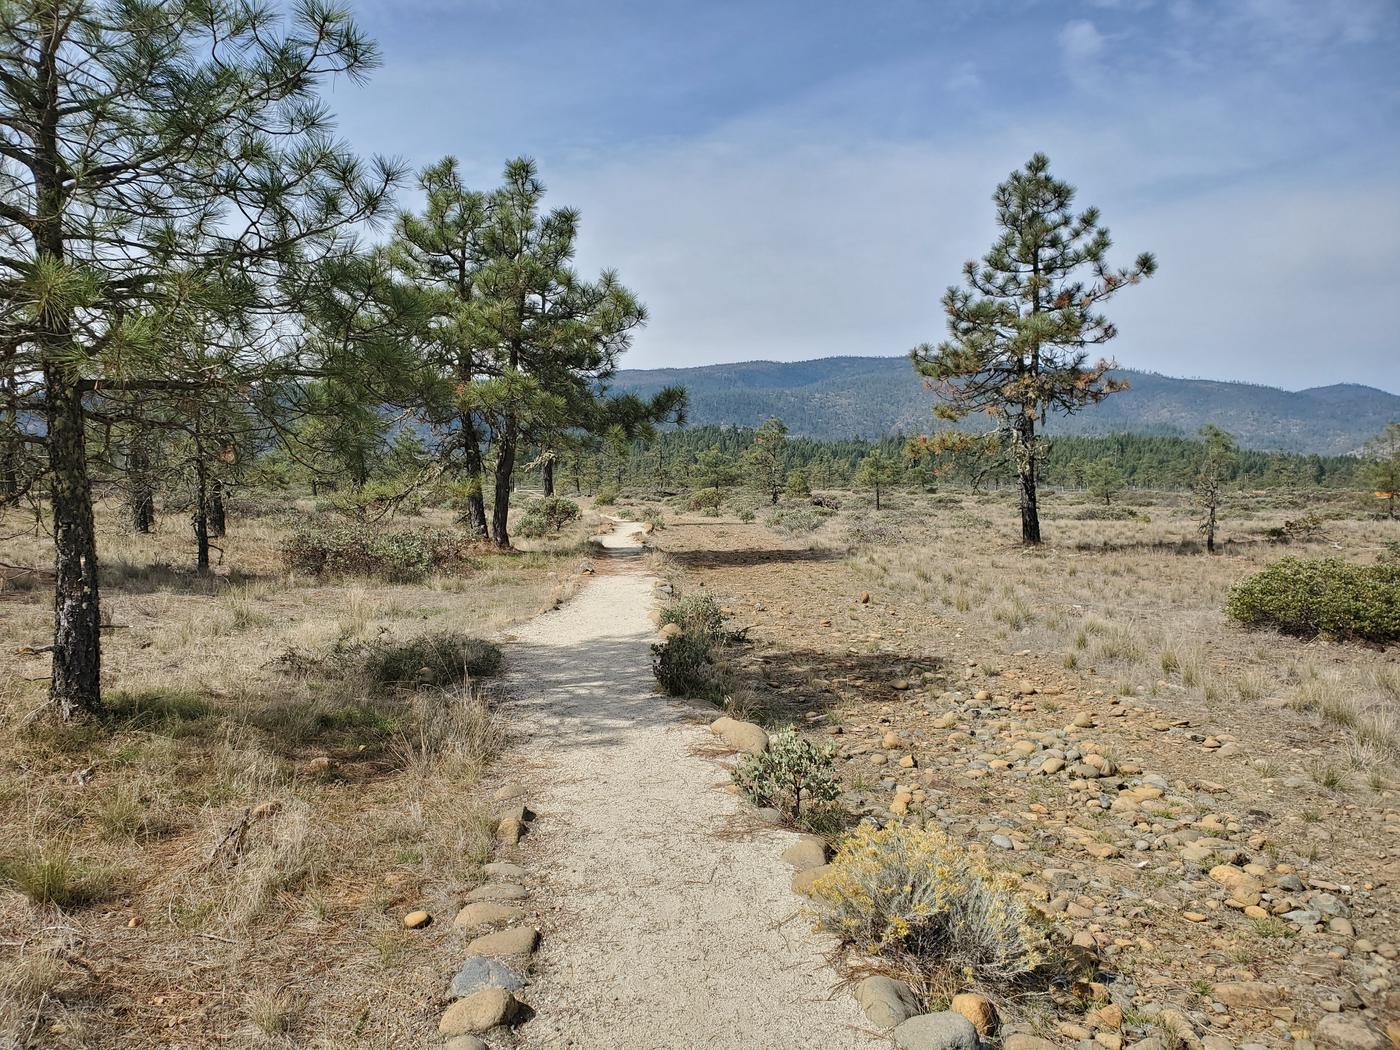 View along the Rough and Ready Flat trail.